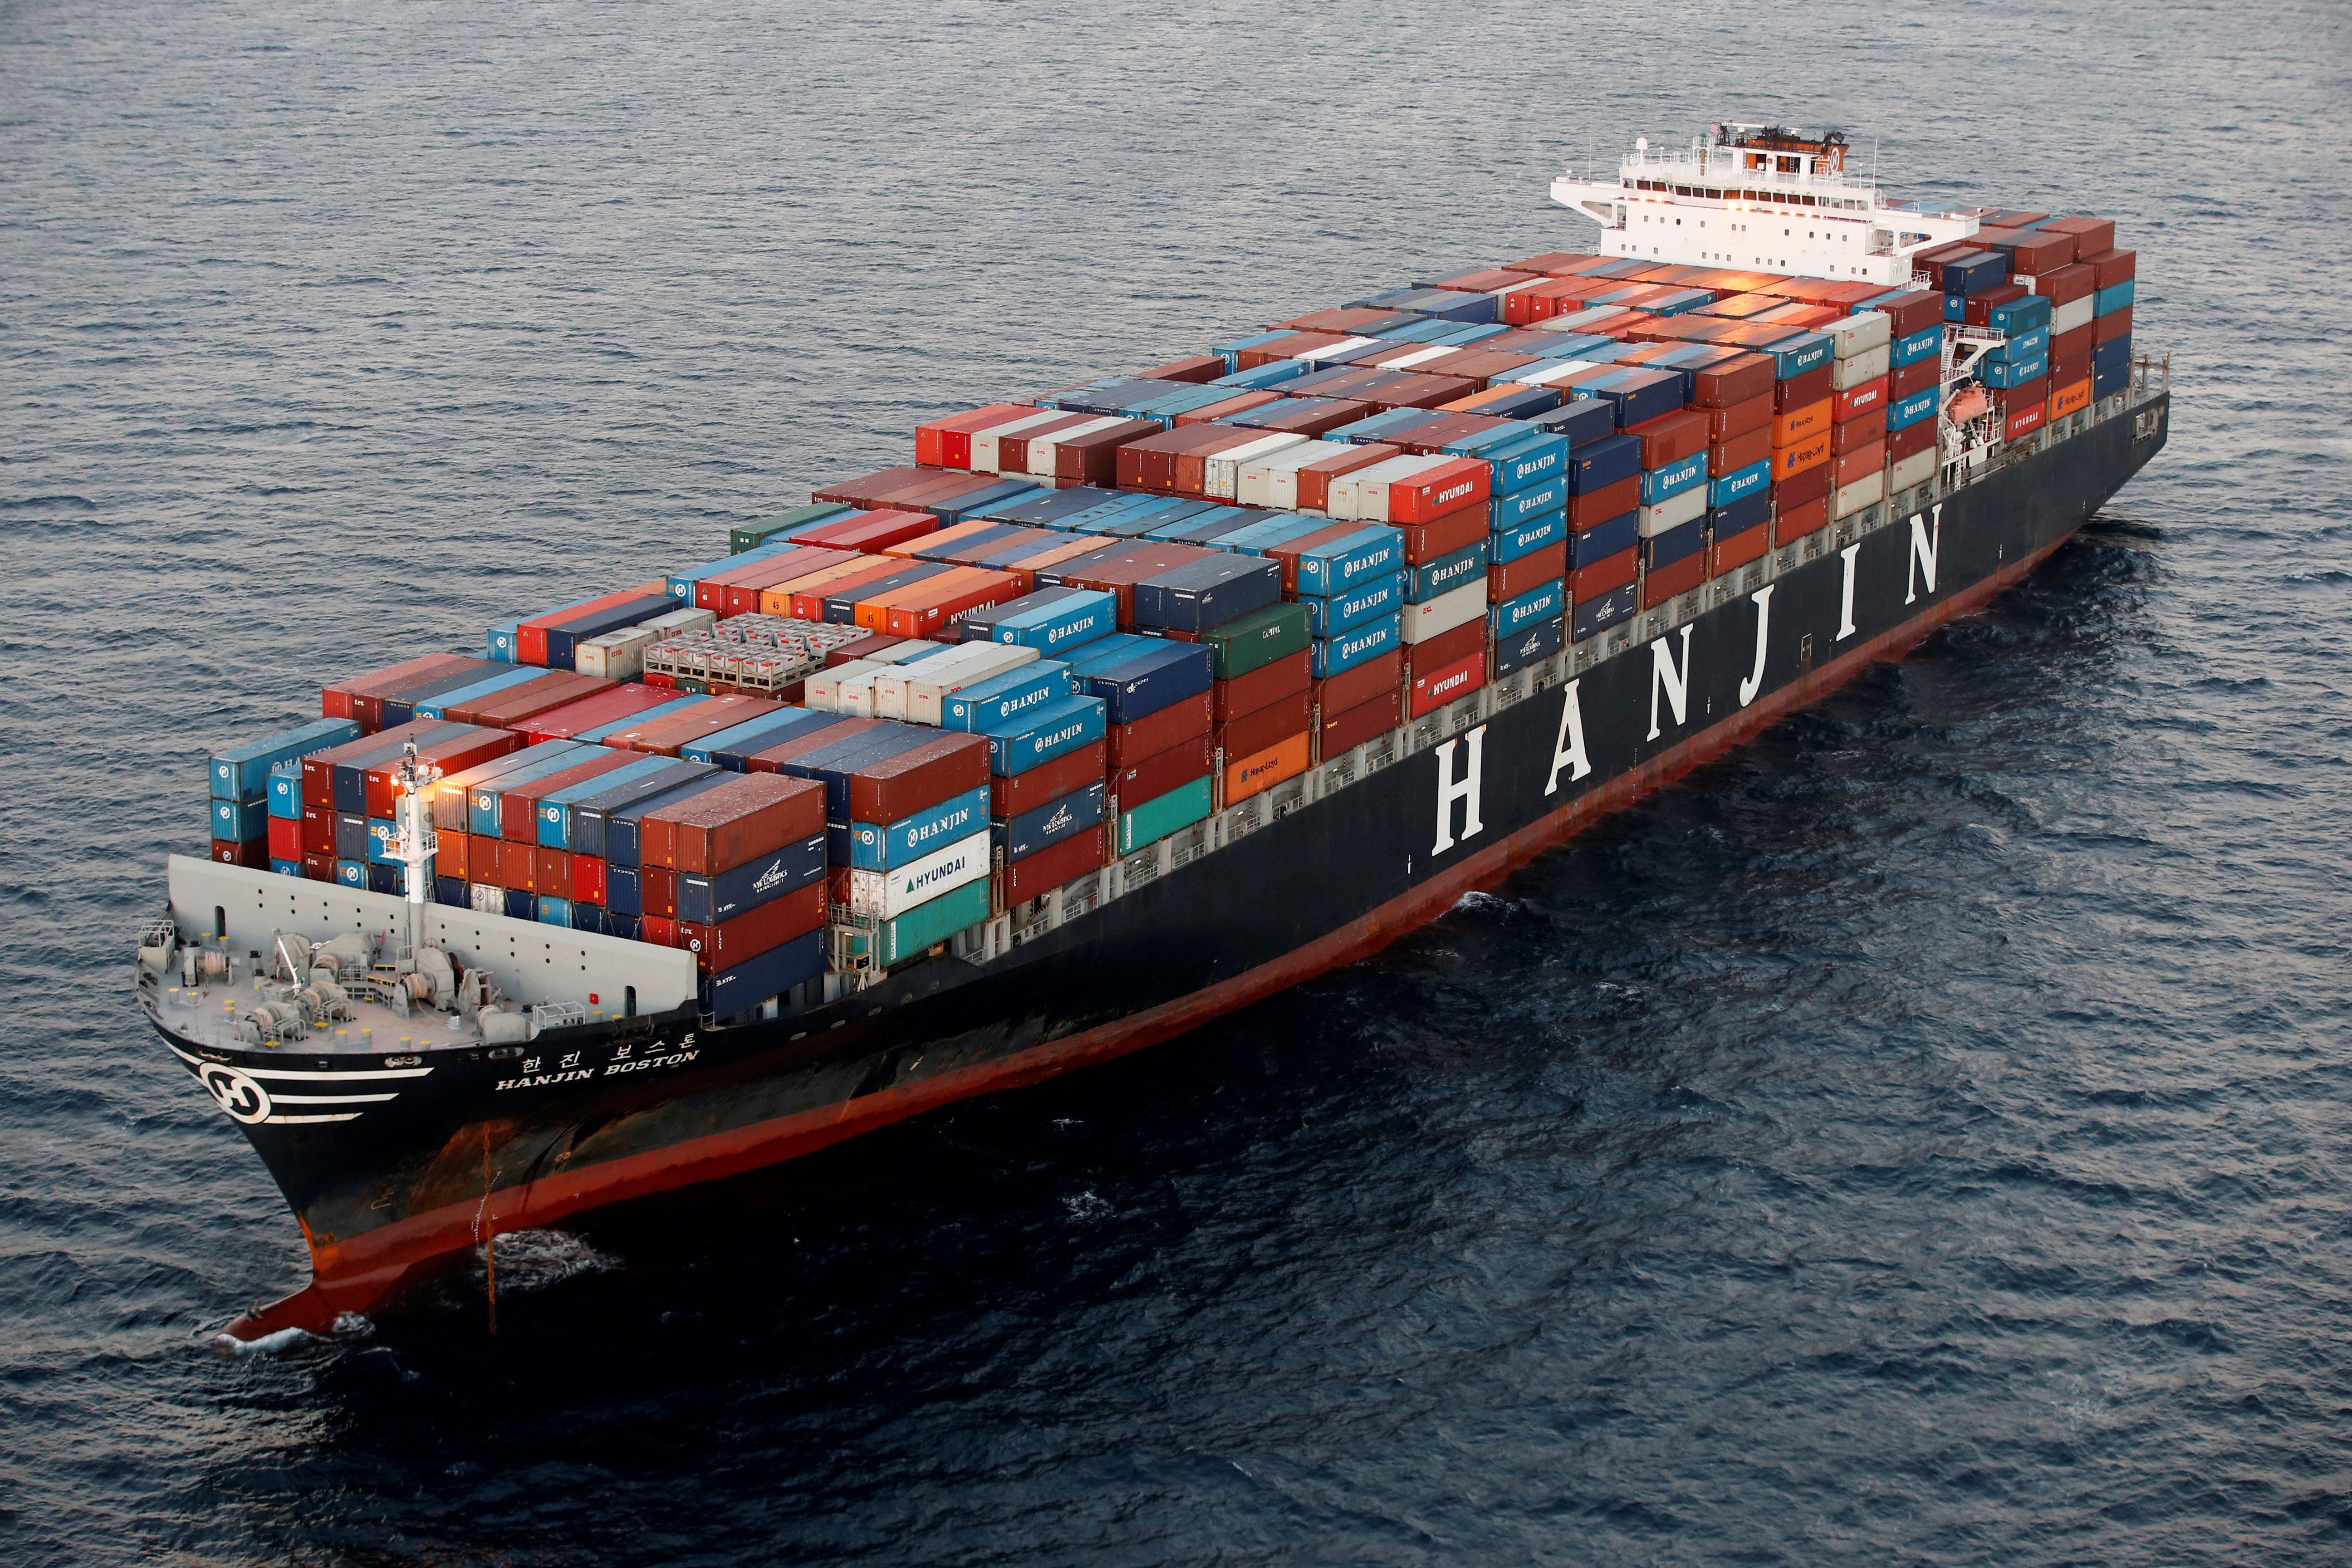 It costs more to ship goods to Nigeria from the US than any other destination - Quartz